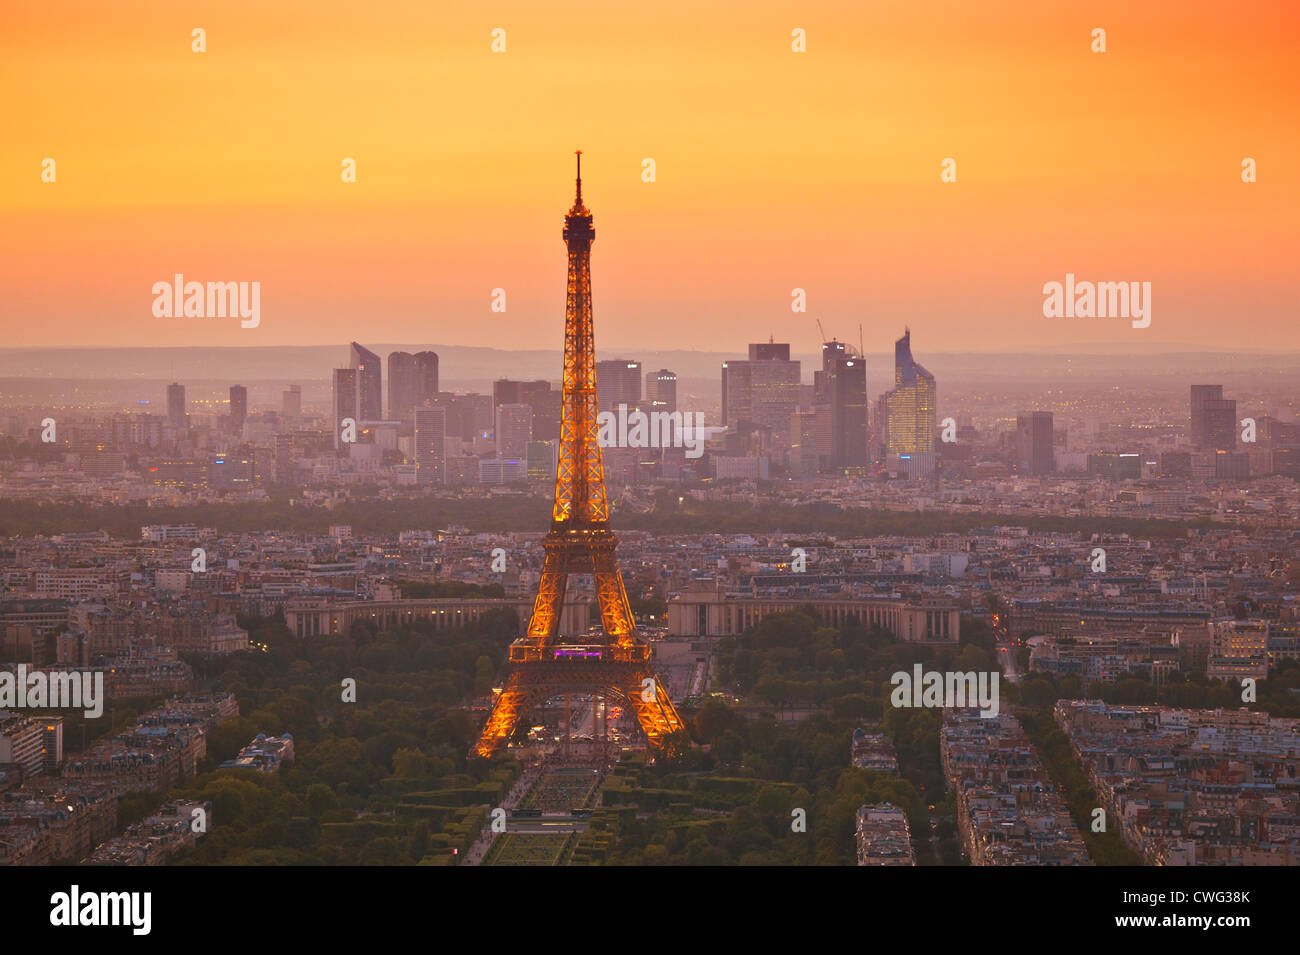 Skyline photos skyline images alamy - Images de la tour eiffel au coucher de soleil ...